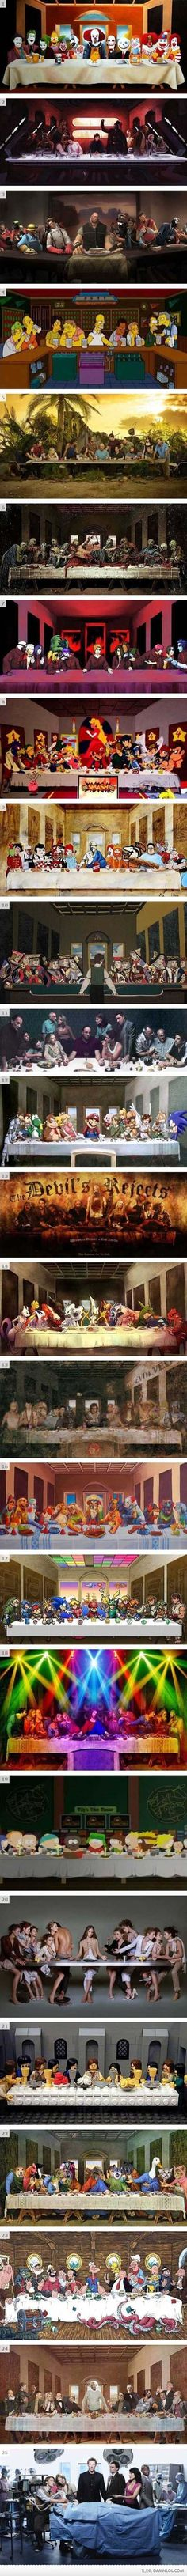 """La Cène "" or ""The Last Supper"" by Léonard de Vinci (parody)"